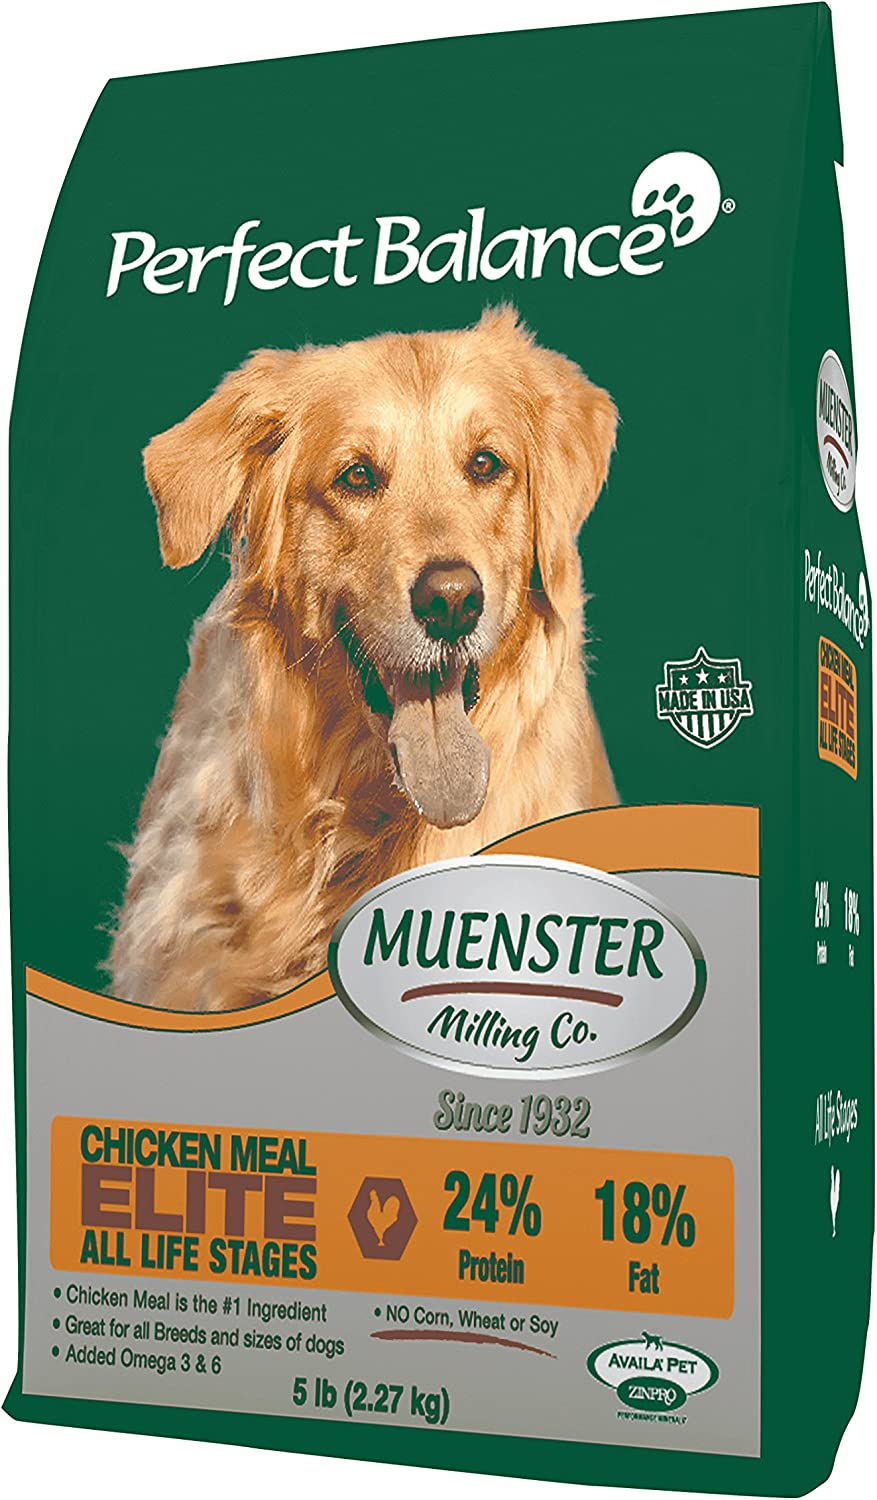 Muenster Milling Co. Perfect Balance Elite – All Life Stages Dog Food